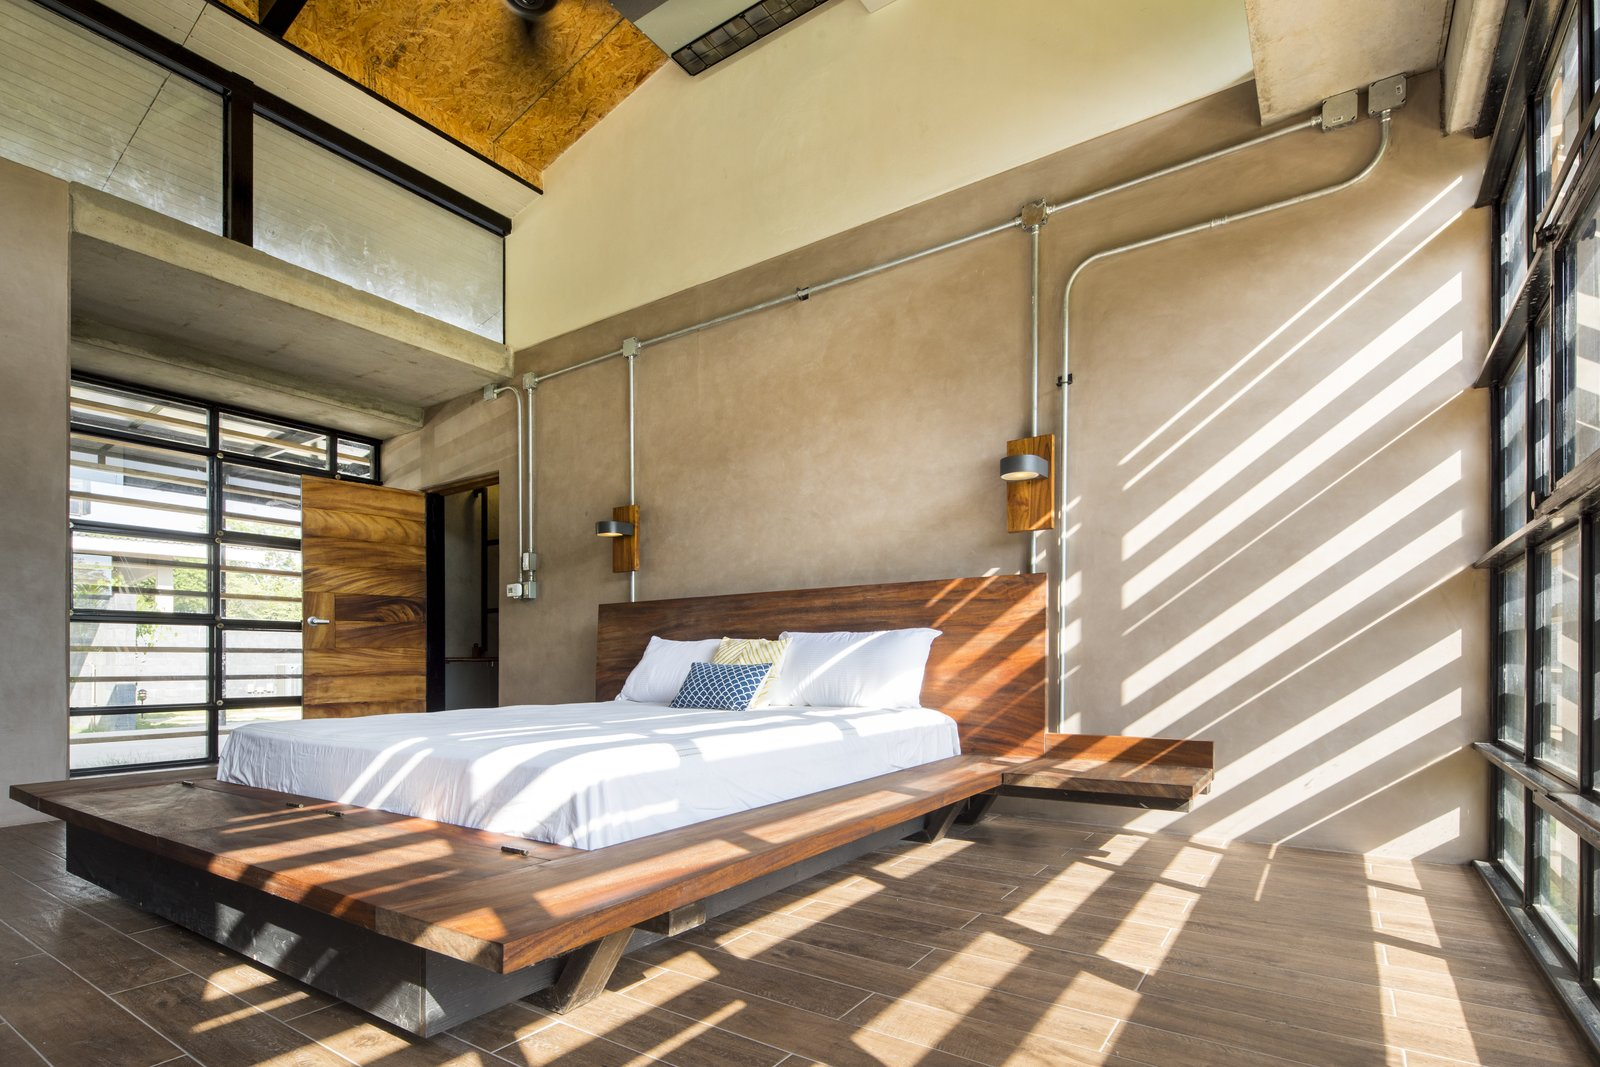 Glass walls are fitted on two sides of the master bedroom.